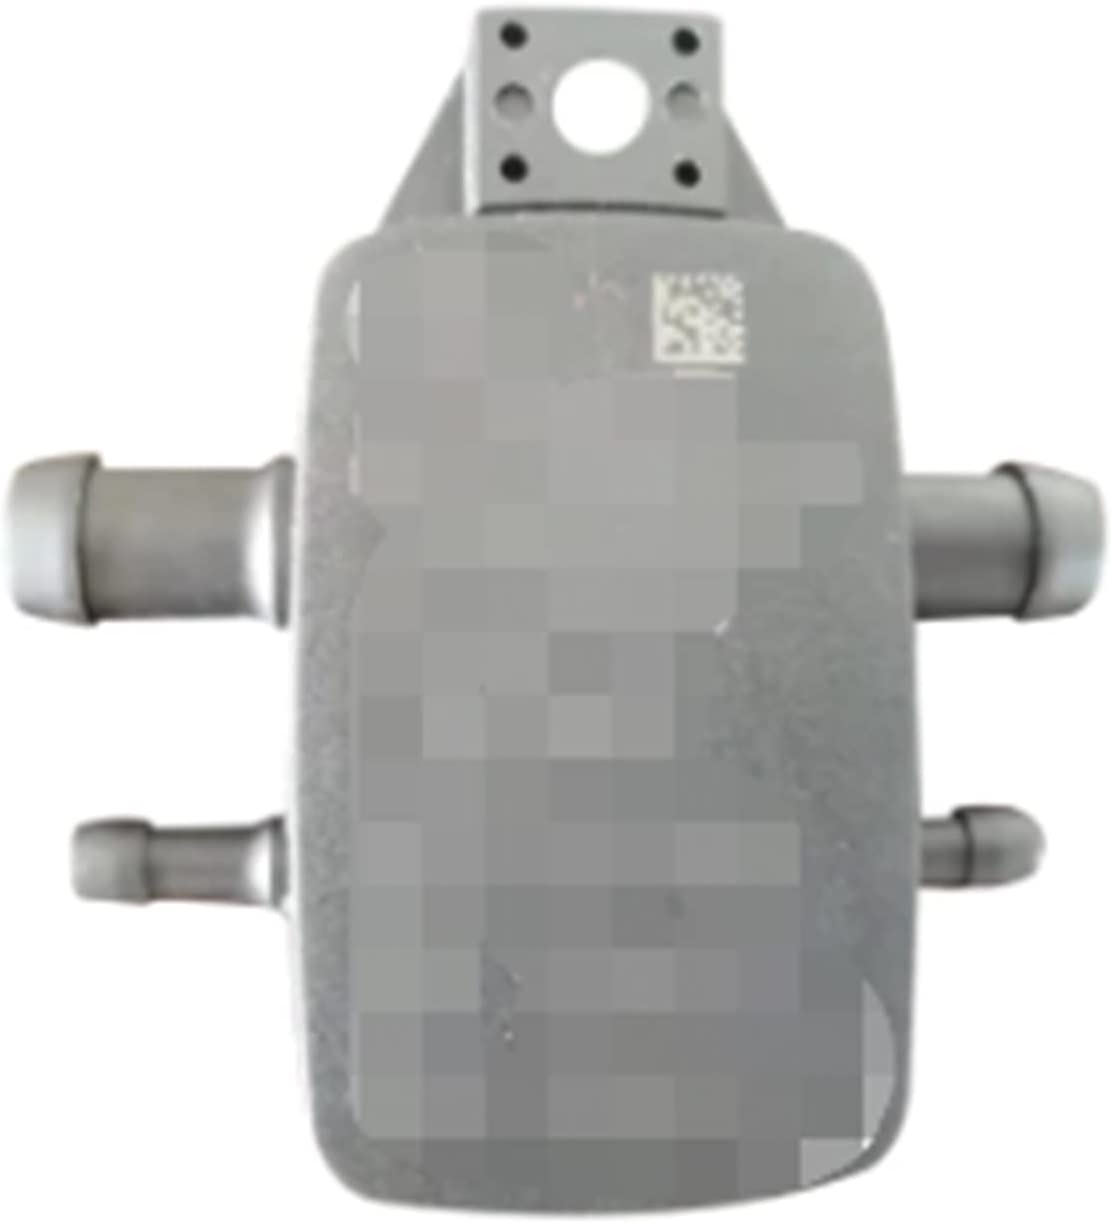 JUNGJUNG Xjun Store 5 Pin D12 sold Limited time for free shipping out MAP Sensor AE Fit Pressure Gas for